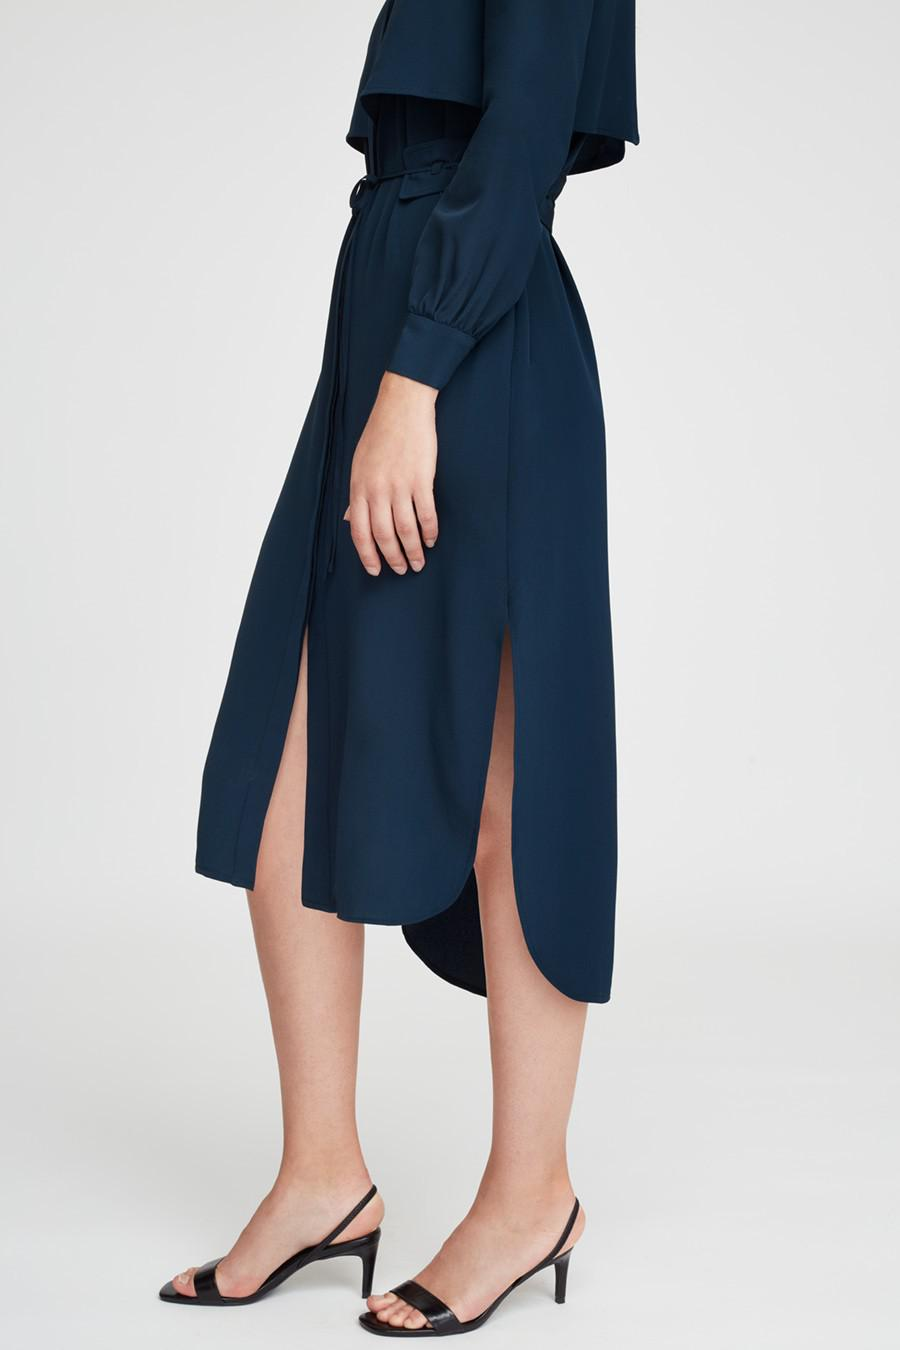 Women's Silk High-Low Shirt Dress in Navy   Size: Large   3 Ply Crepe Silk by Cuyana 4